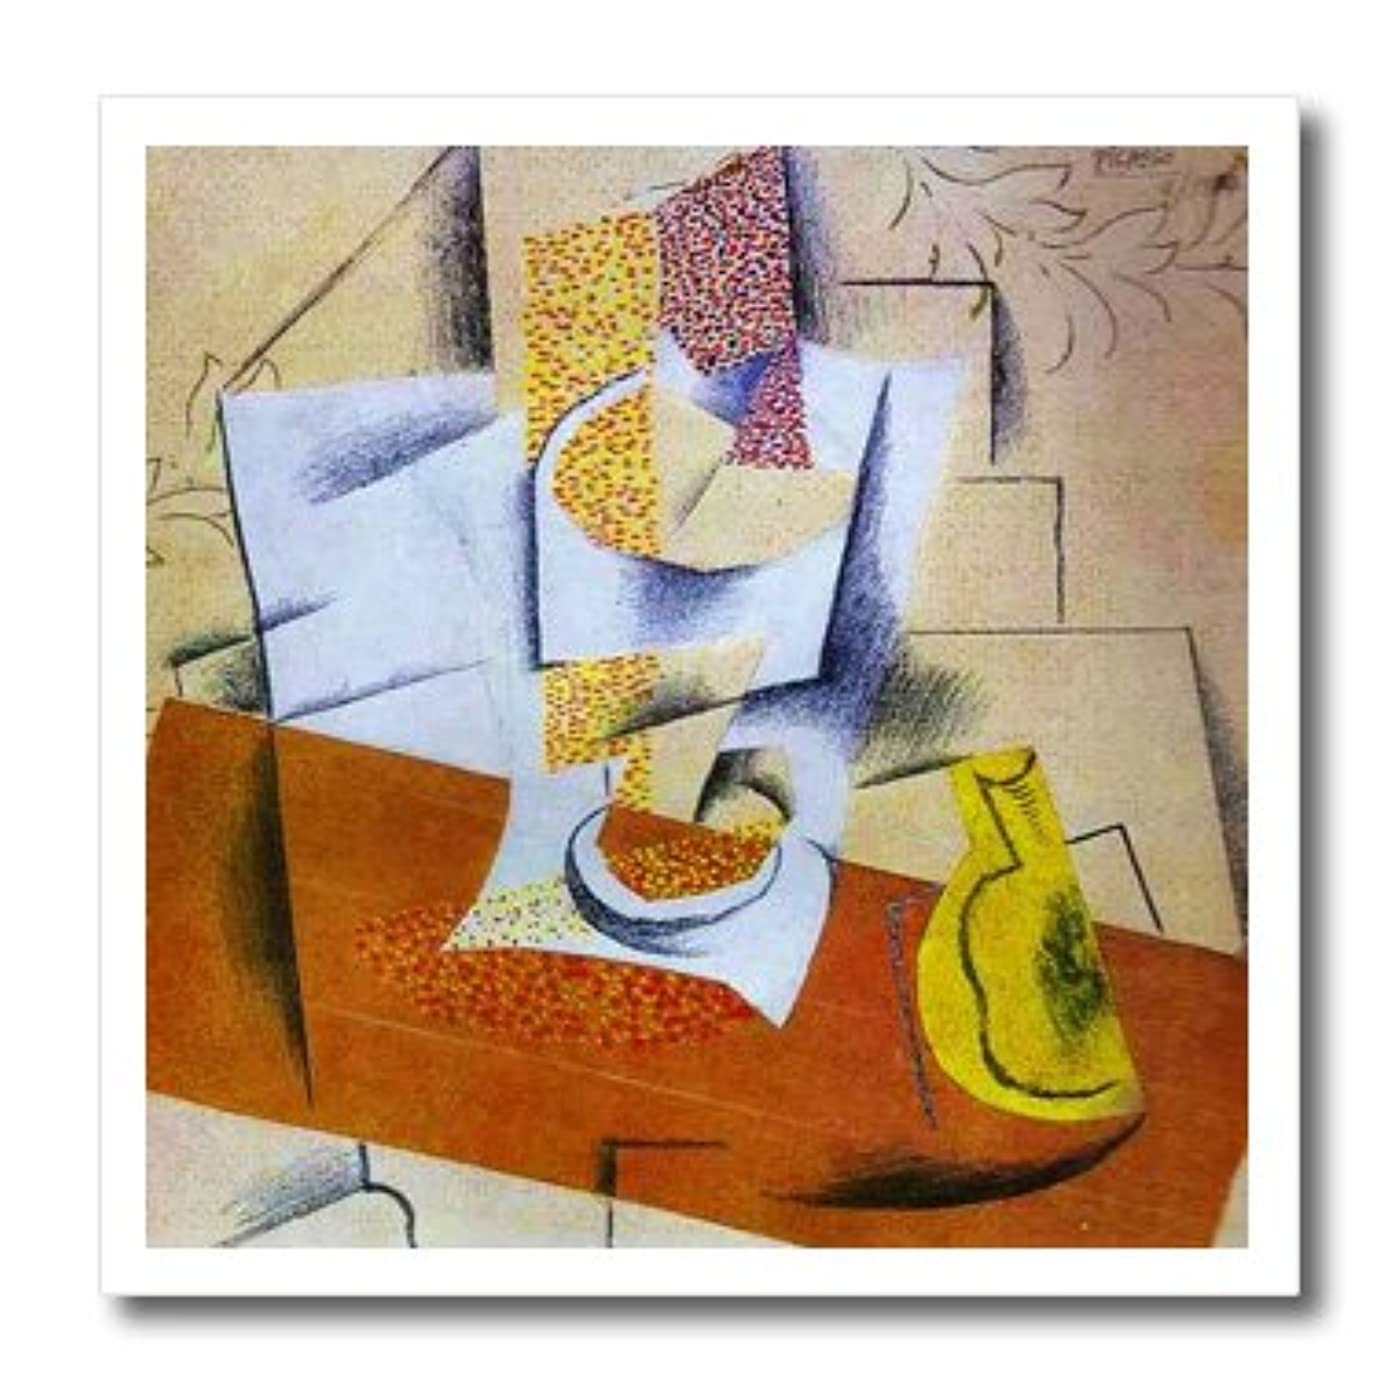 3dRose ht_62288_3 Painting Picasso Bowl N Fruit Iron on Heat Transfer, 10 by 10